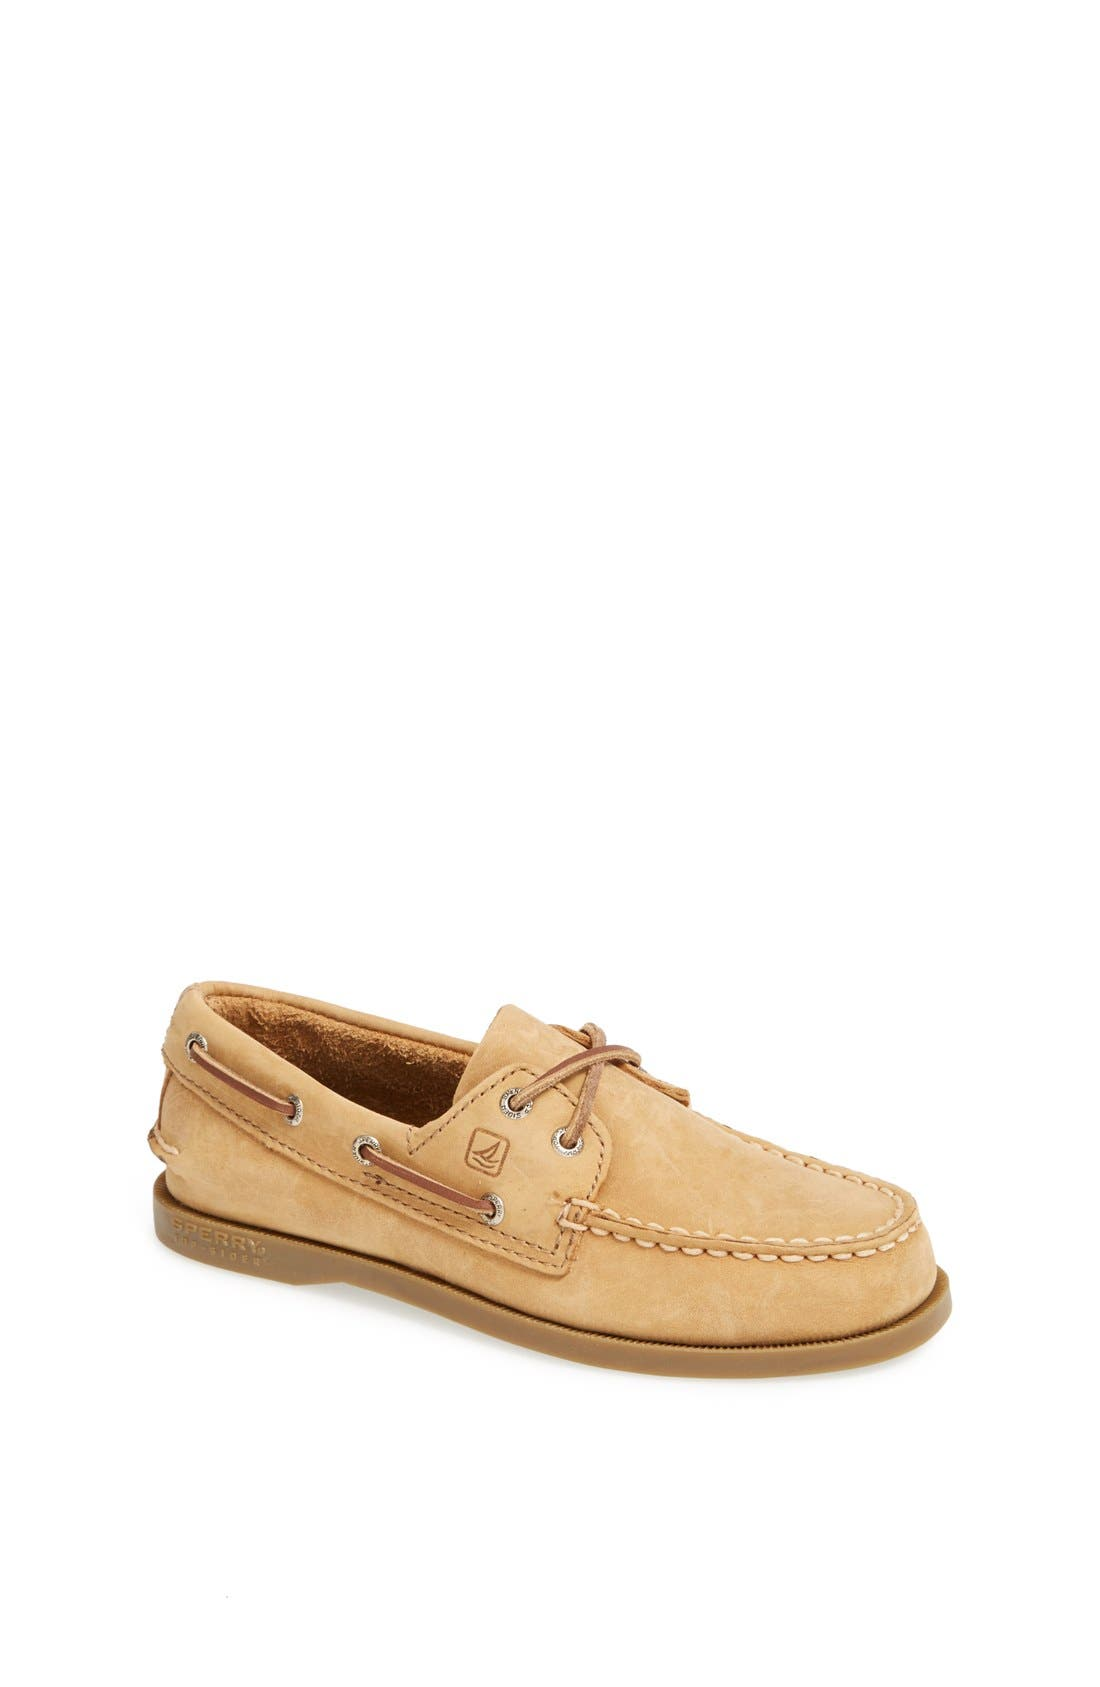 'Authentic Original' Boat Shoe,                             Main thumbnail 1, color,                             SAHARA LEATHER